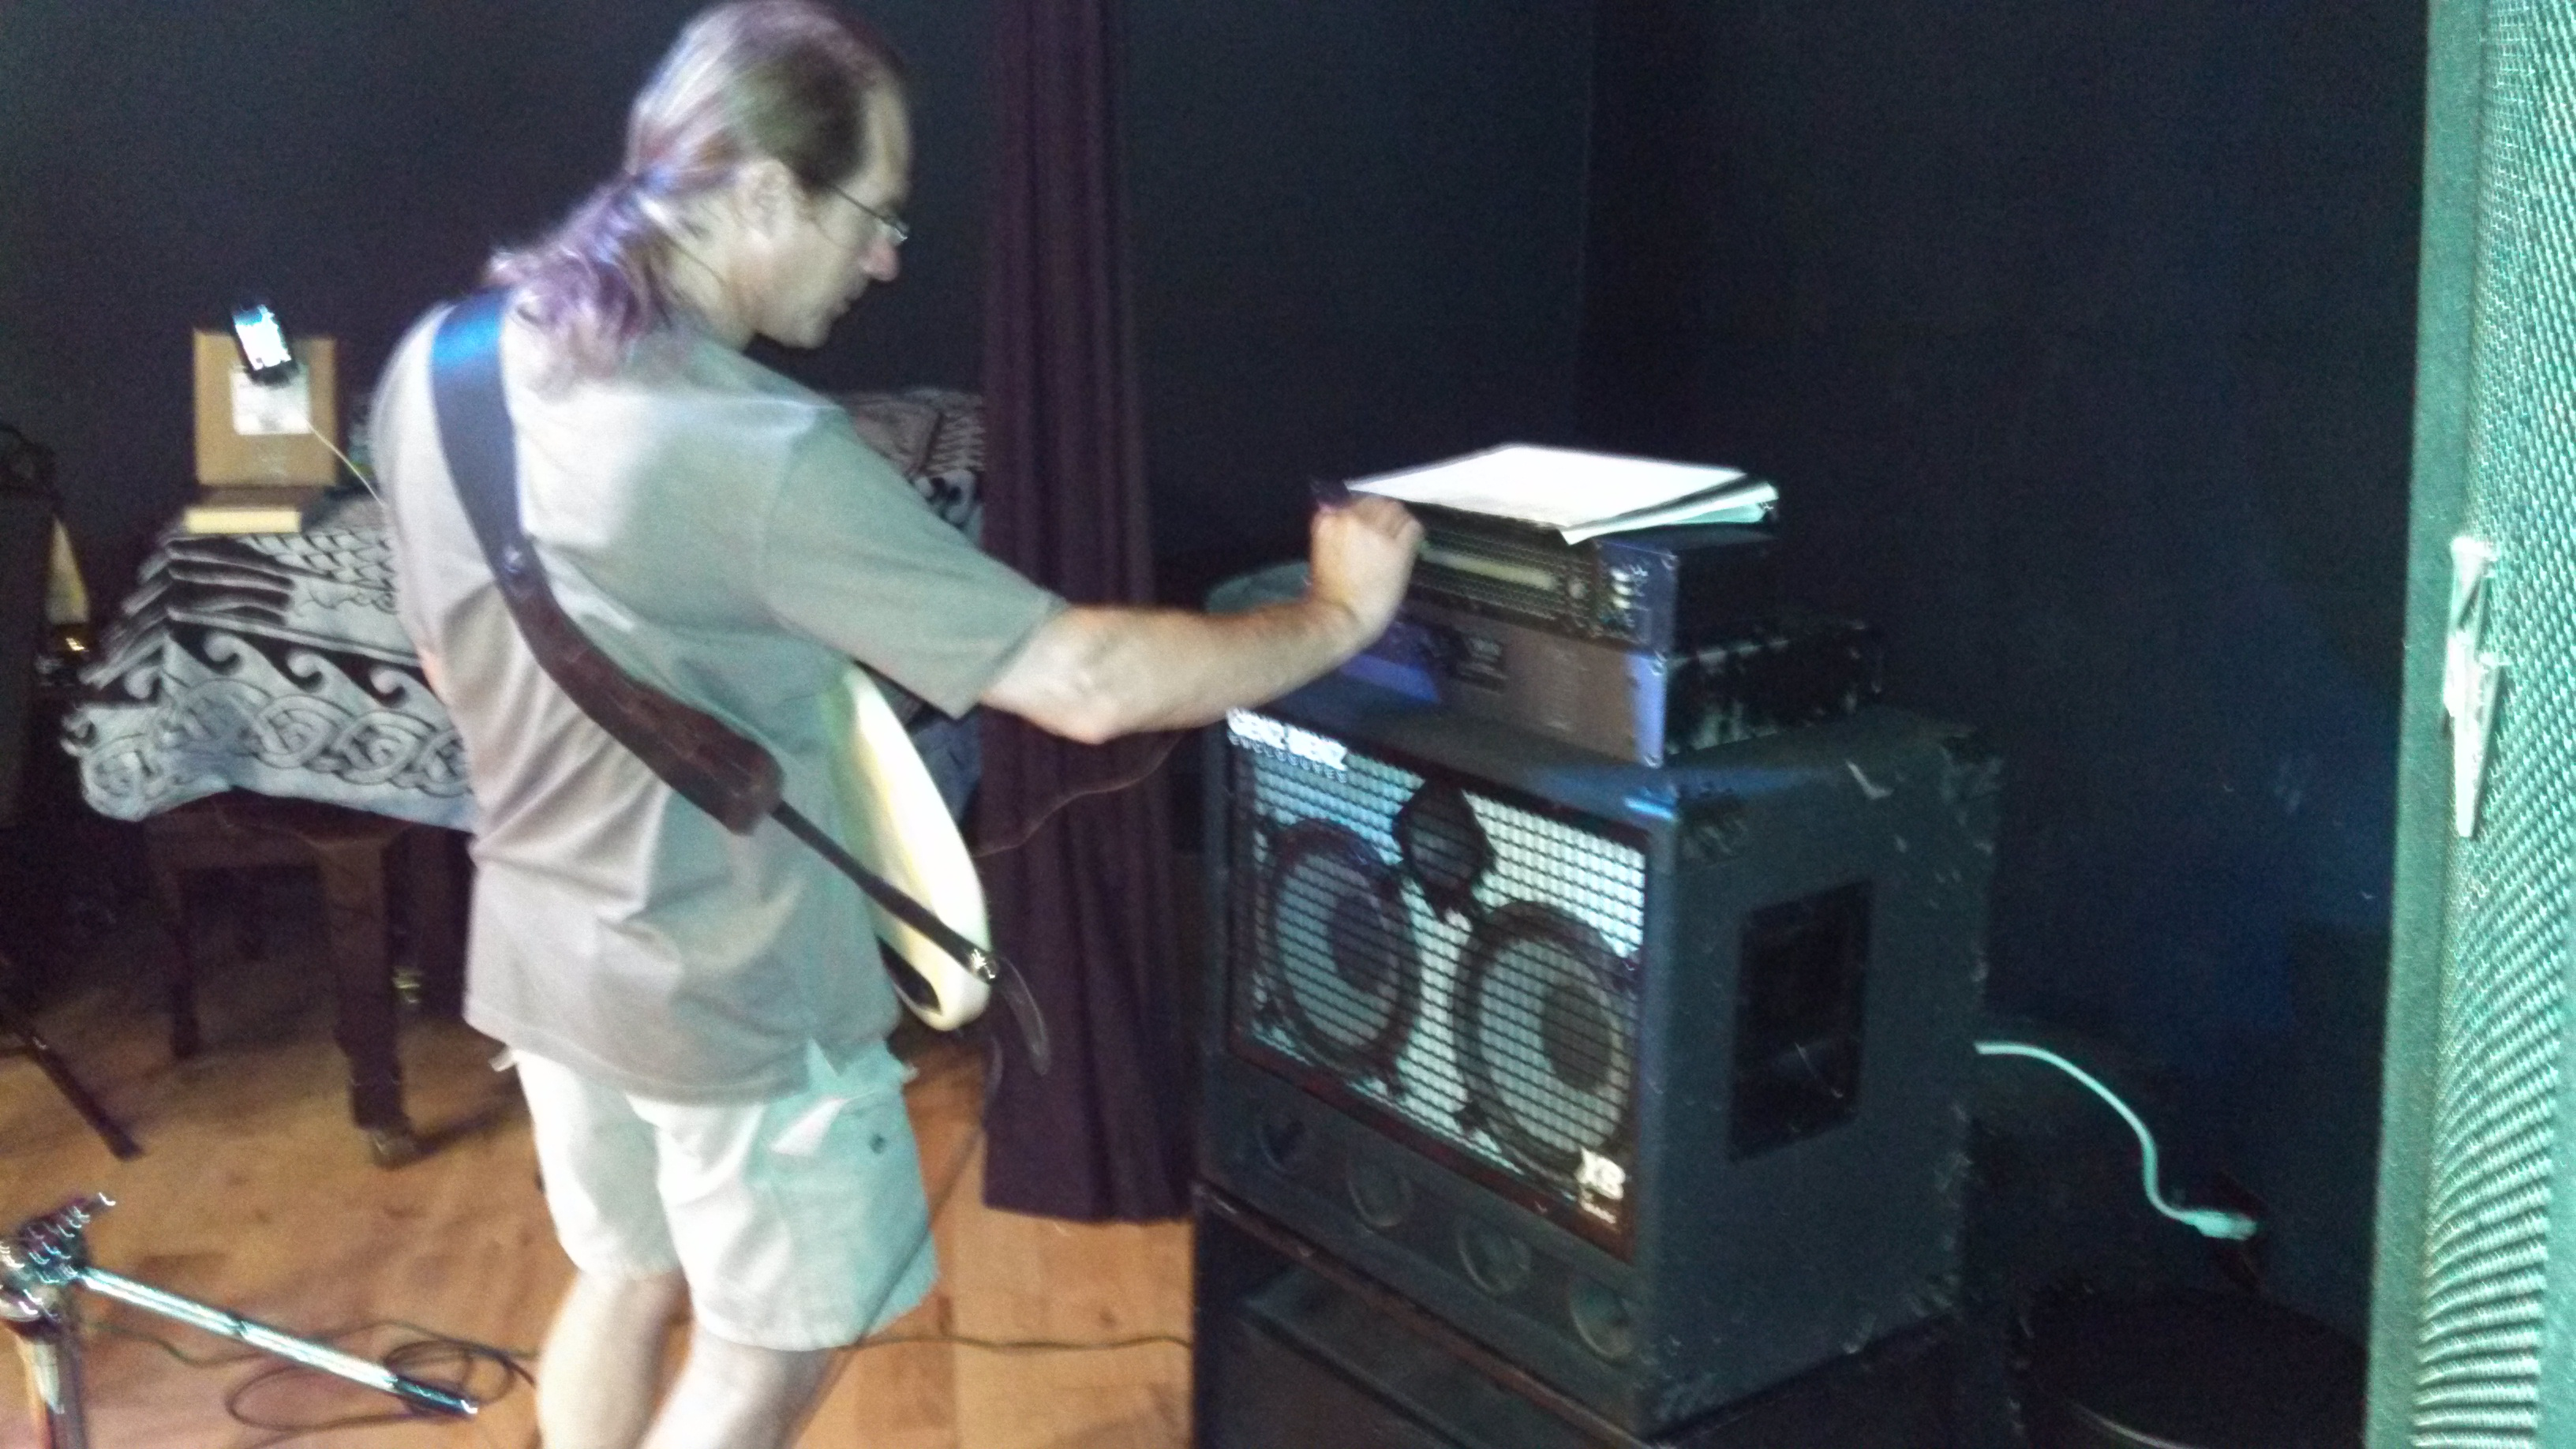 Dave adjusts his bass amp to get just the right volume and tone.